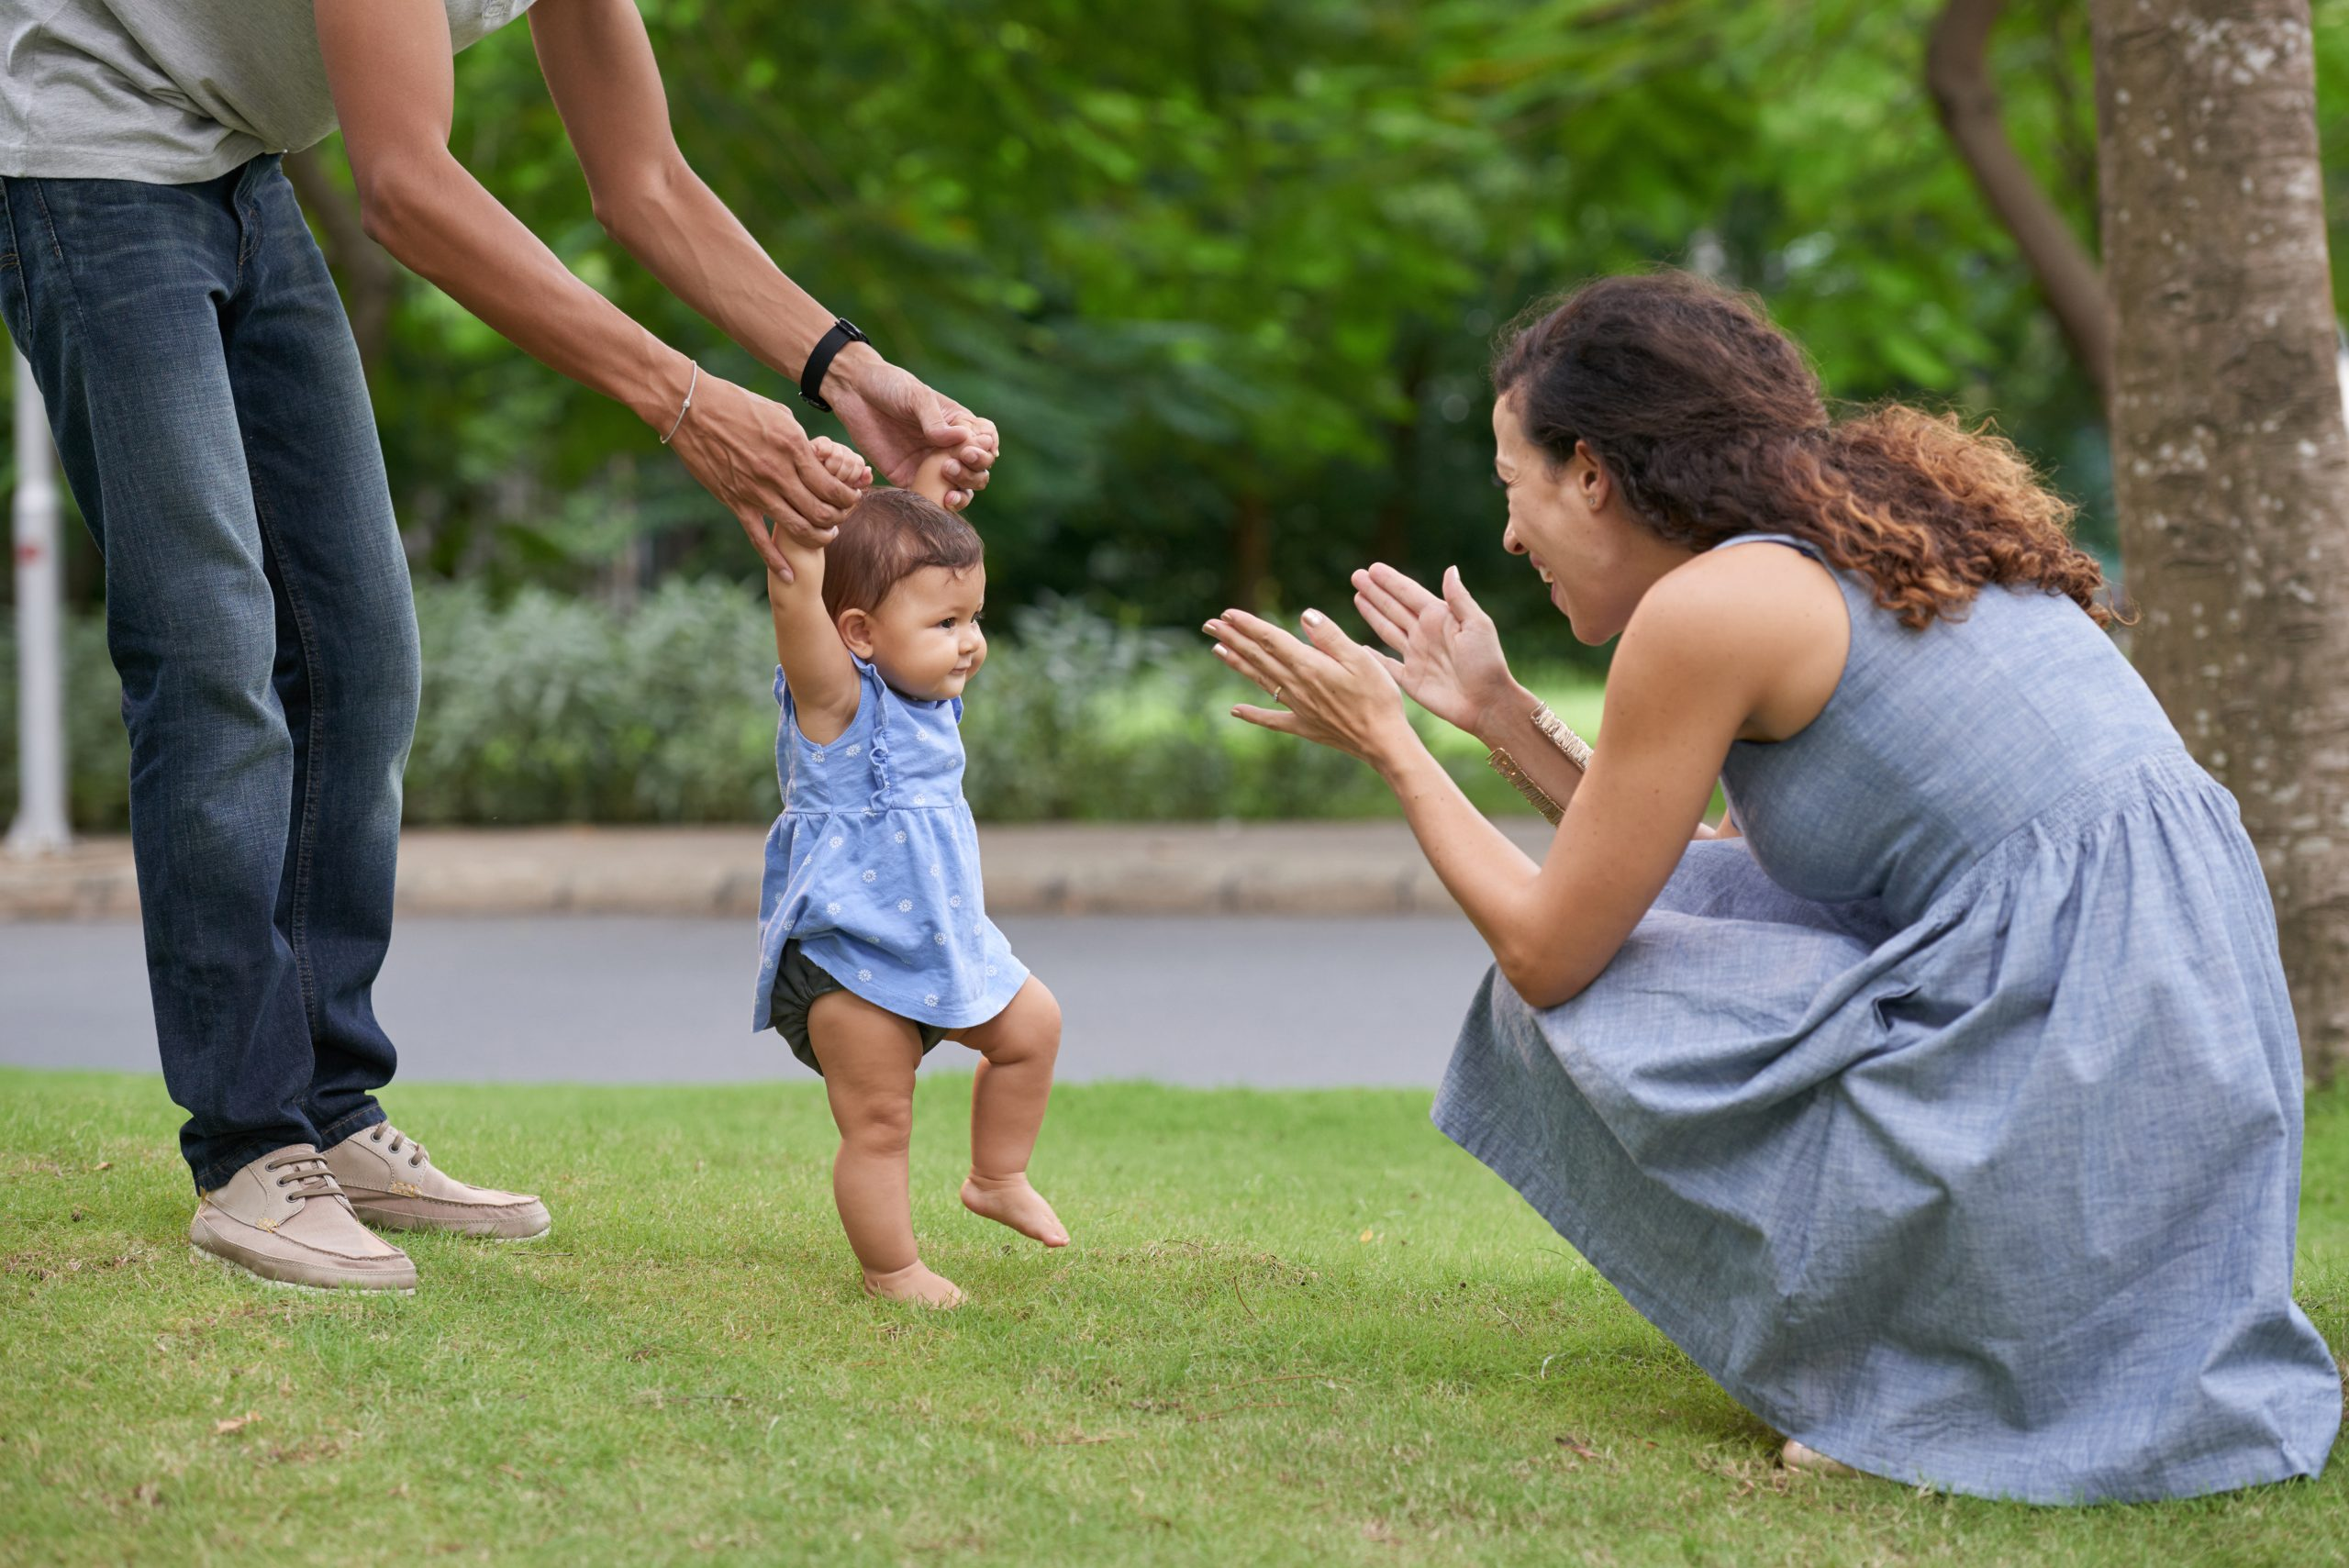 Baby holding onto dad's hands attempting to walk to mom outside in the grass